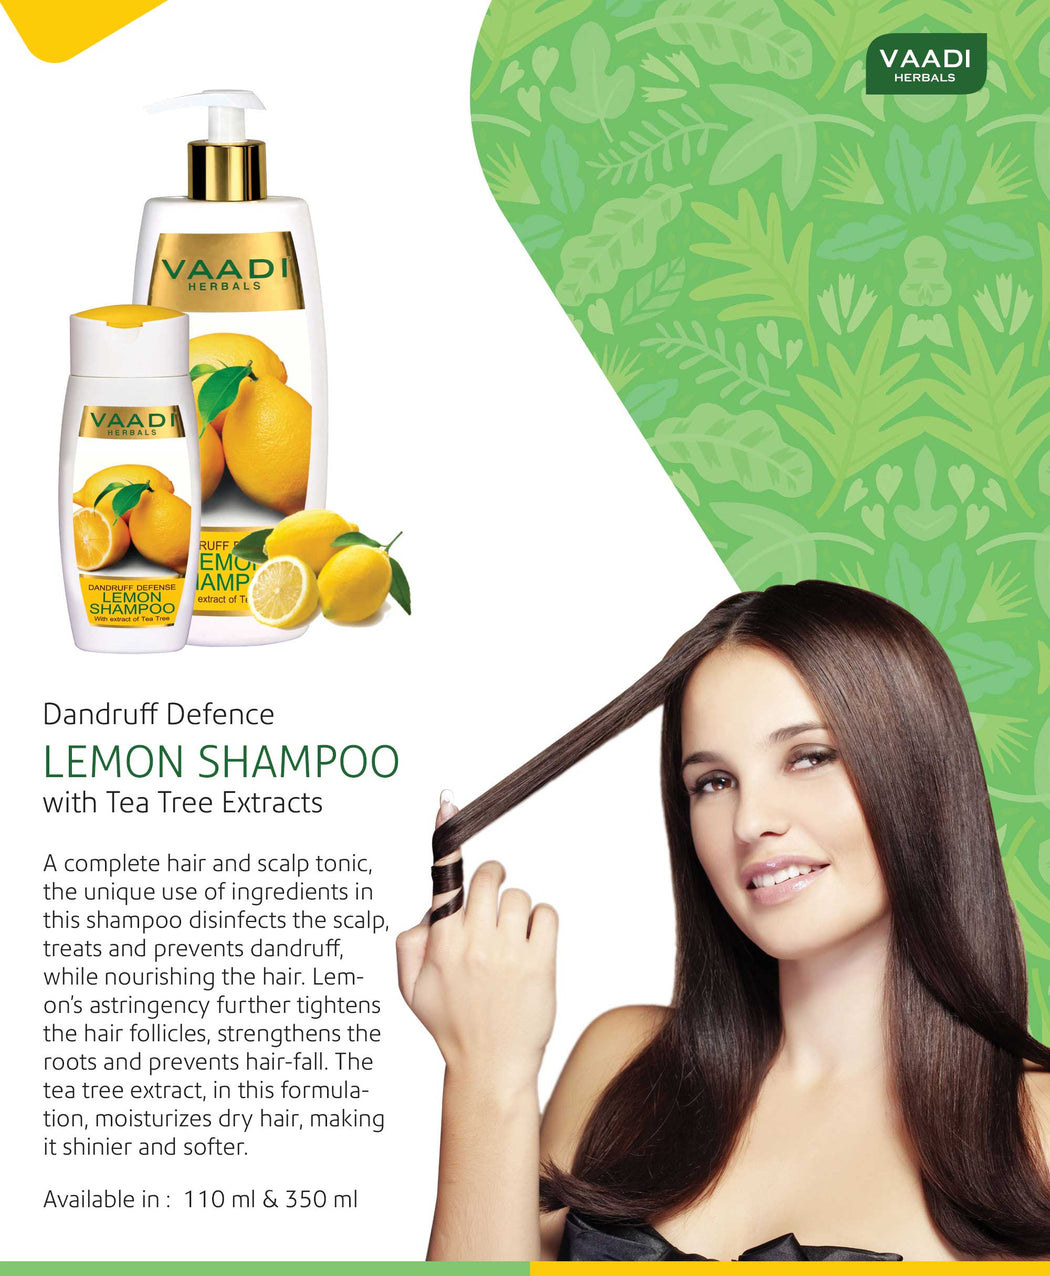 Dandruff Defense Organic Lemon Shampoo with Tea Tree Extract (110 m/ 4 fl oz)